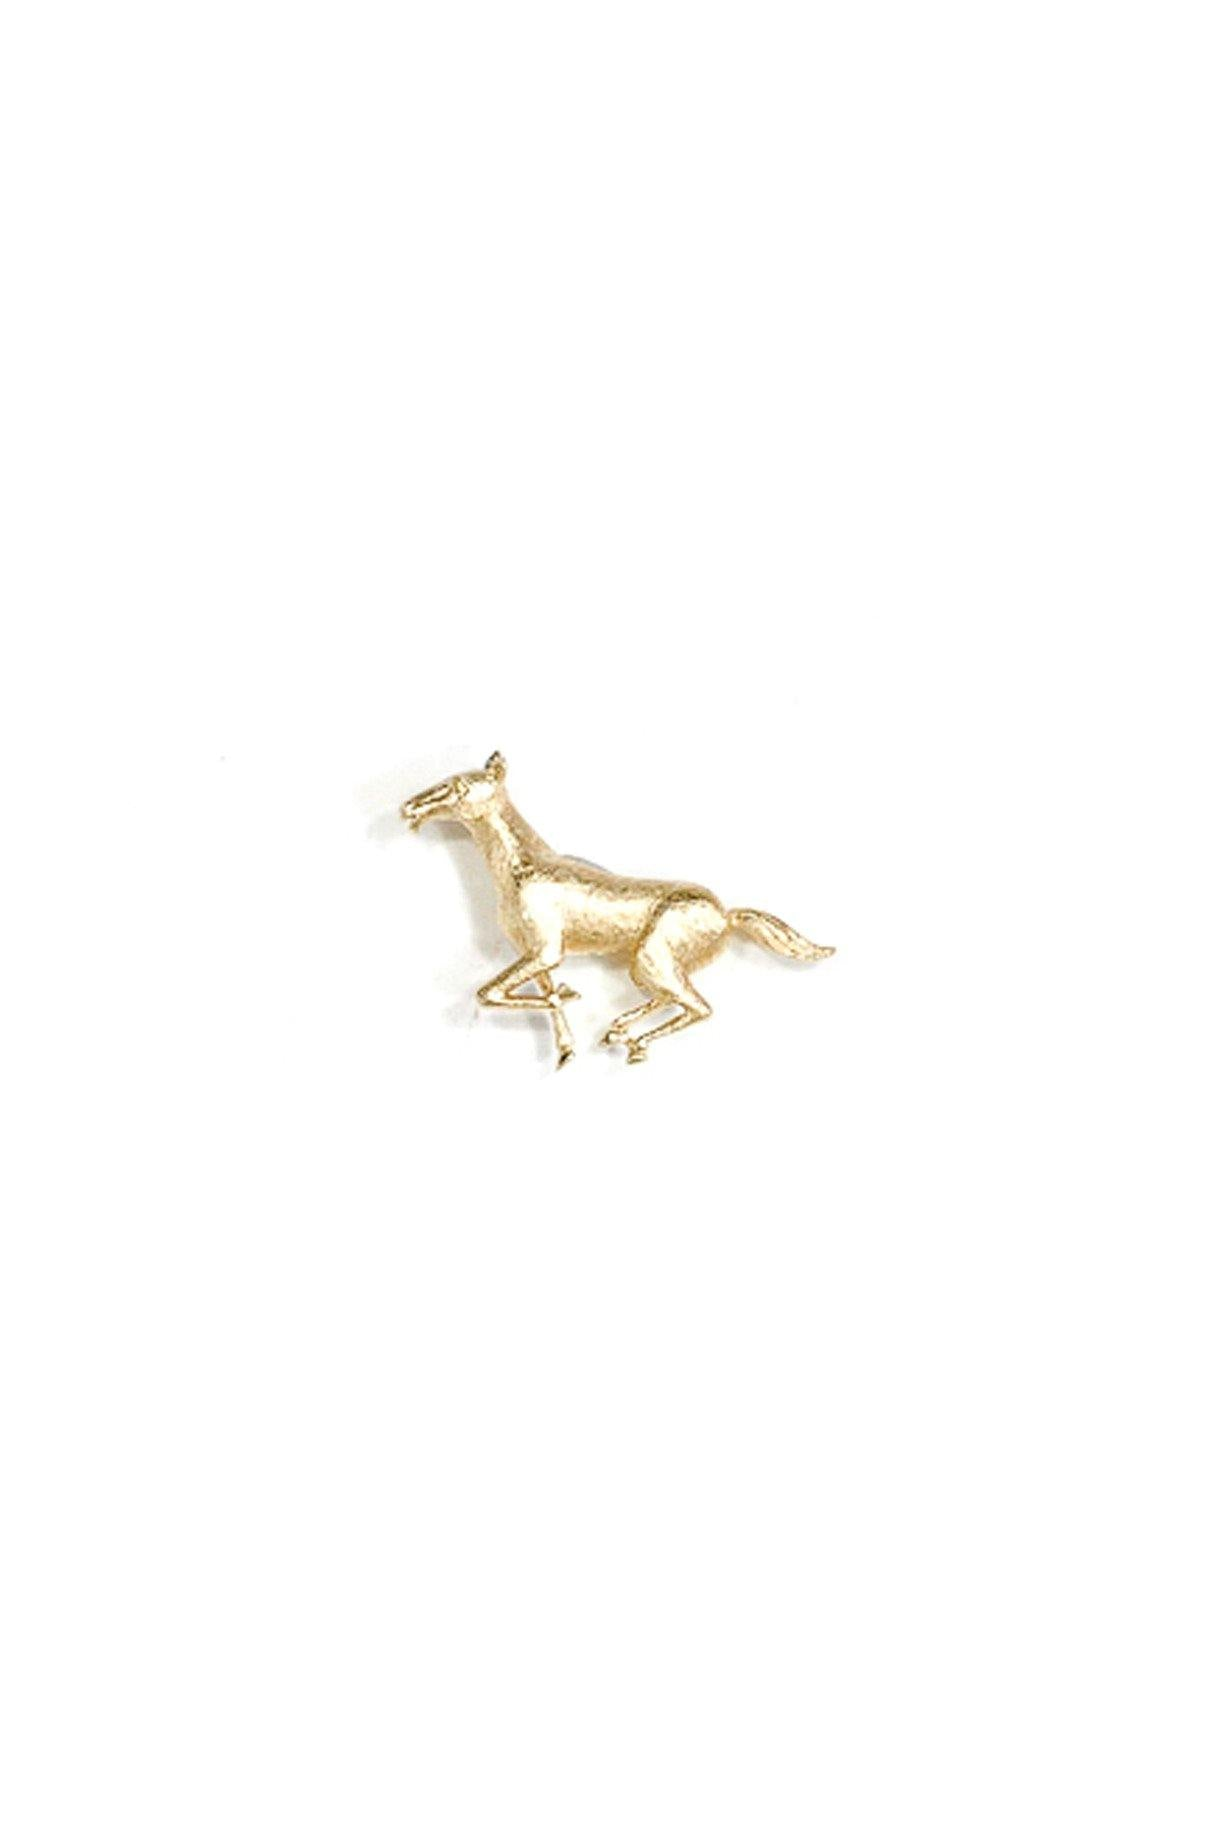 70's__Boucher__Mini Horse Brooch